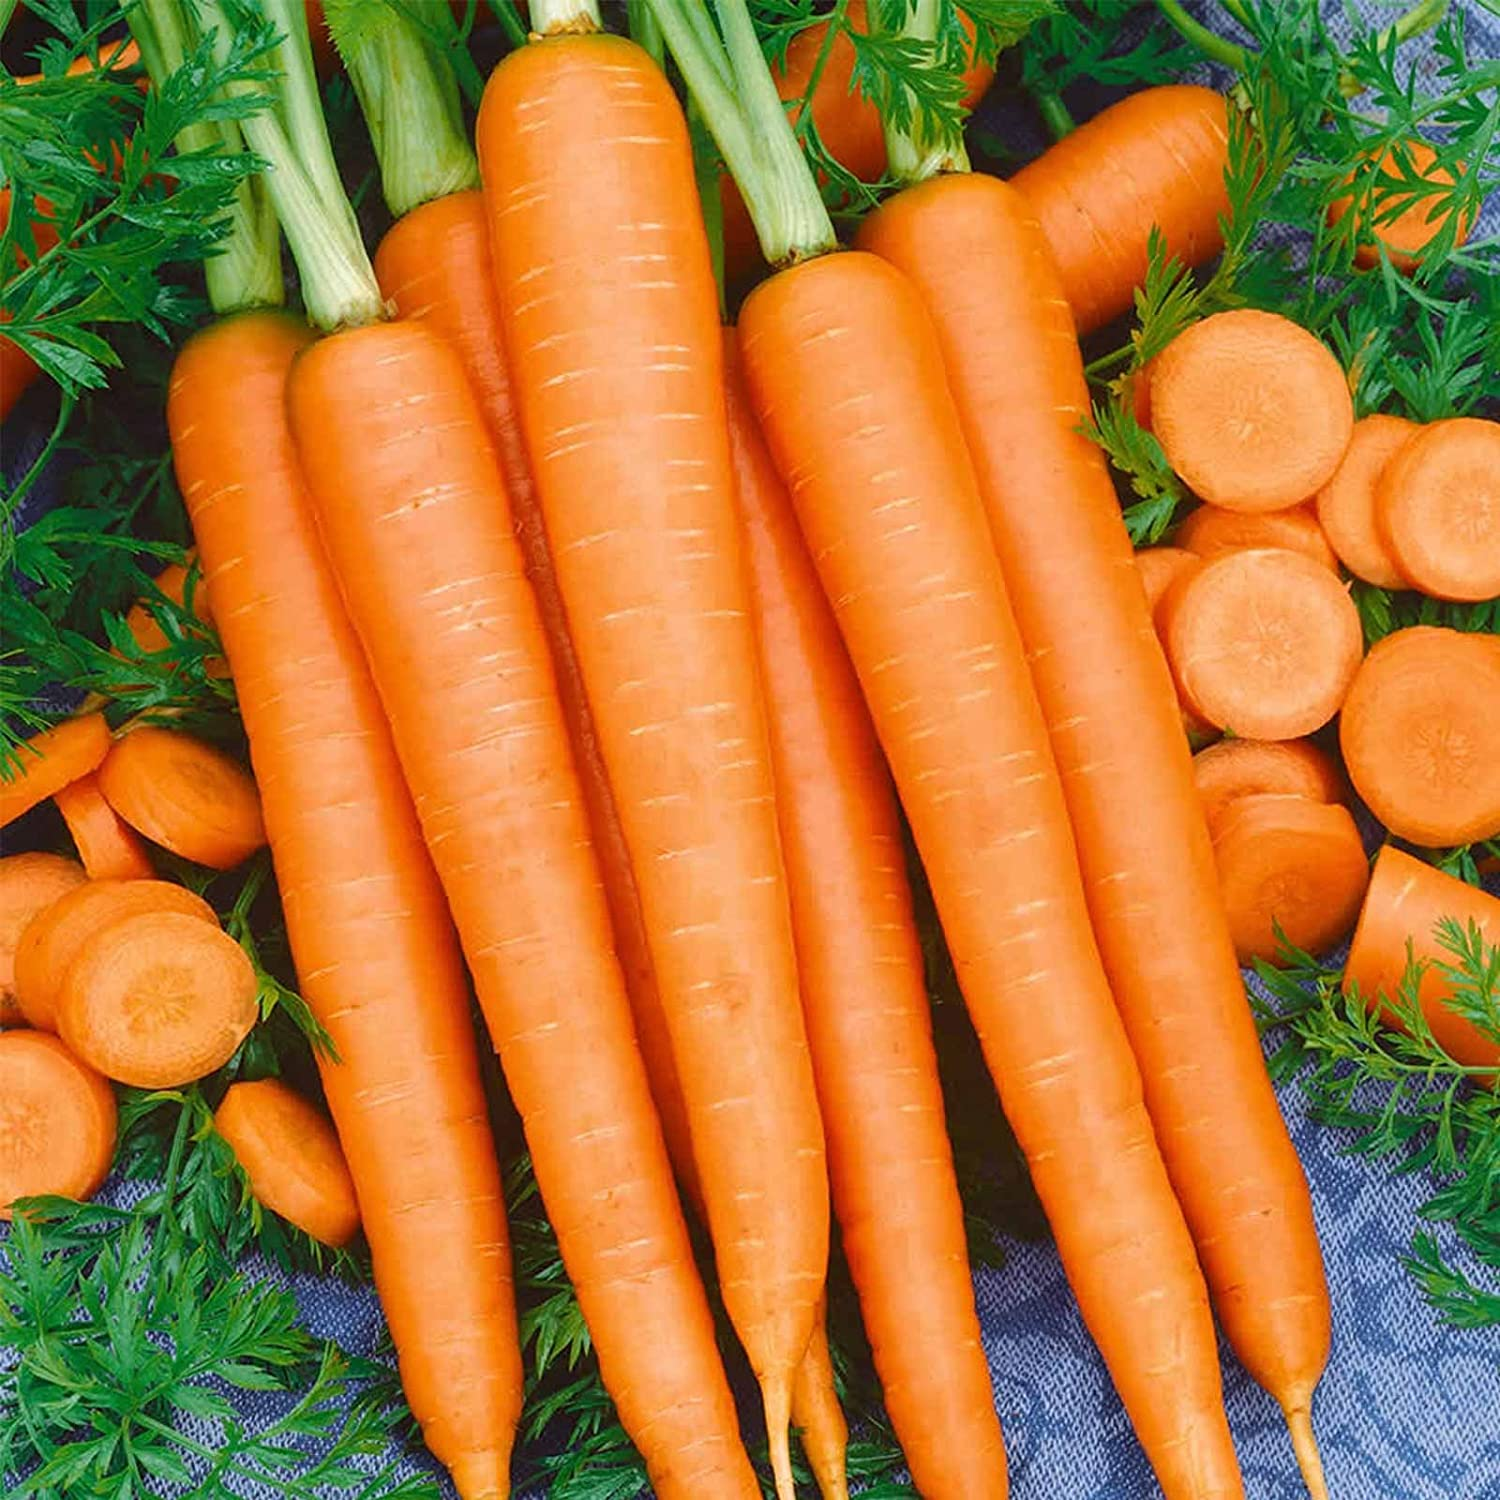 Tendersweet Carrot Seeds - 5 Lb ~1,600,000 Seeds - Non-GMO, Heirloom Vegetable Garden Seeds - Gardening by Mountain Valley Seeds